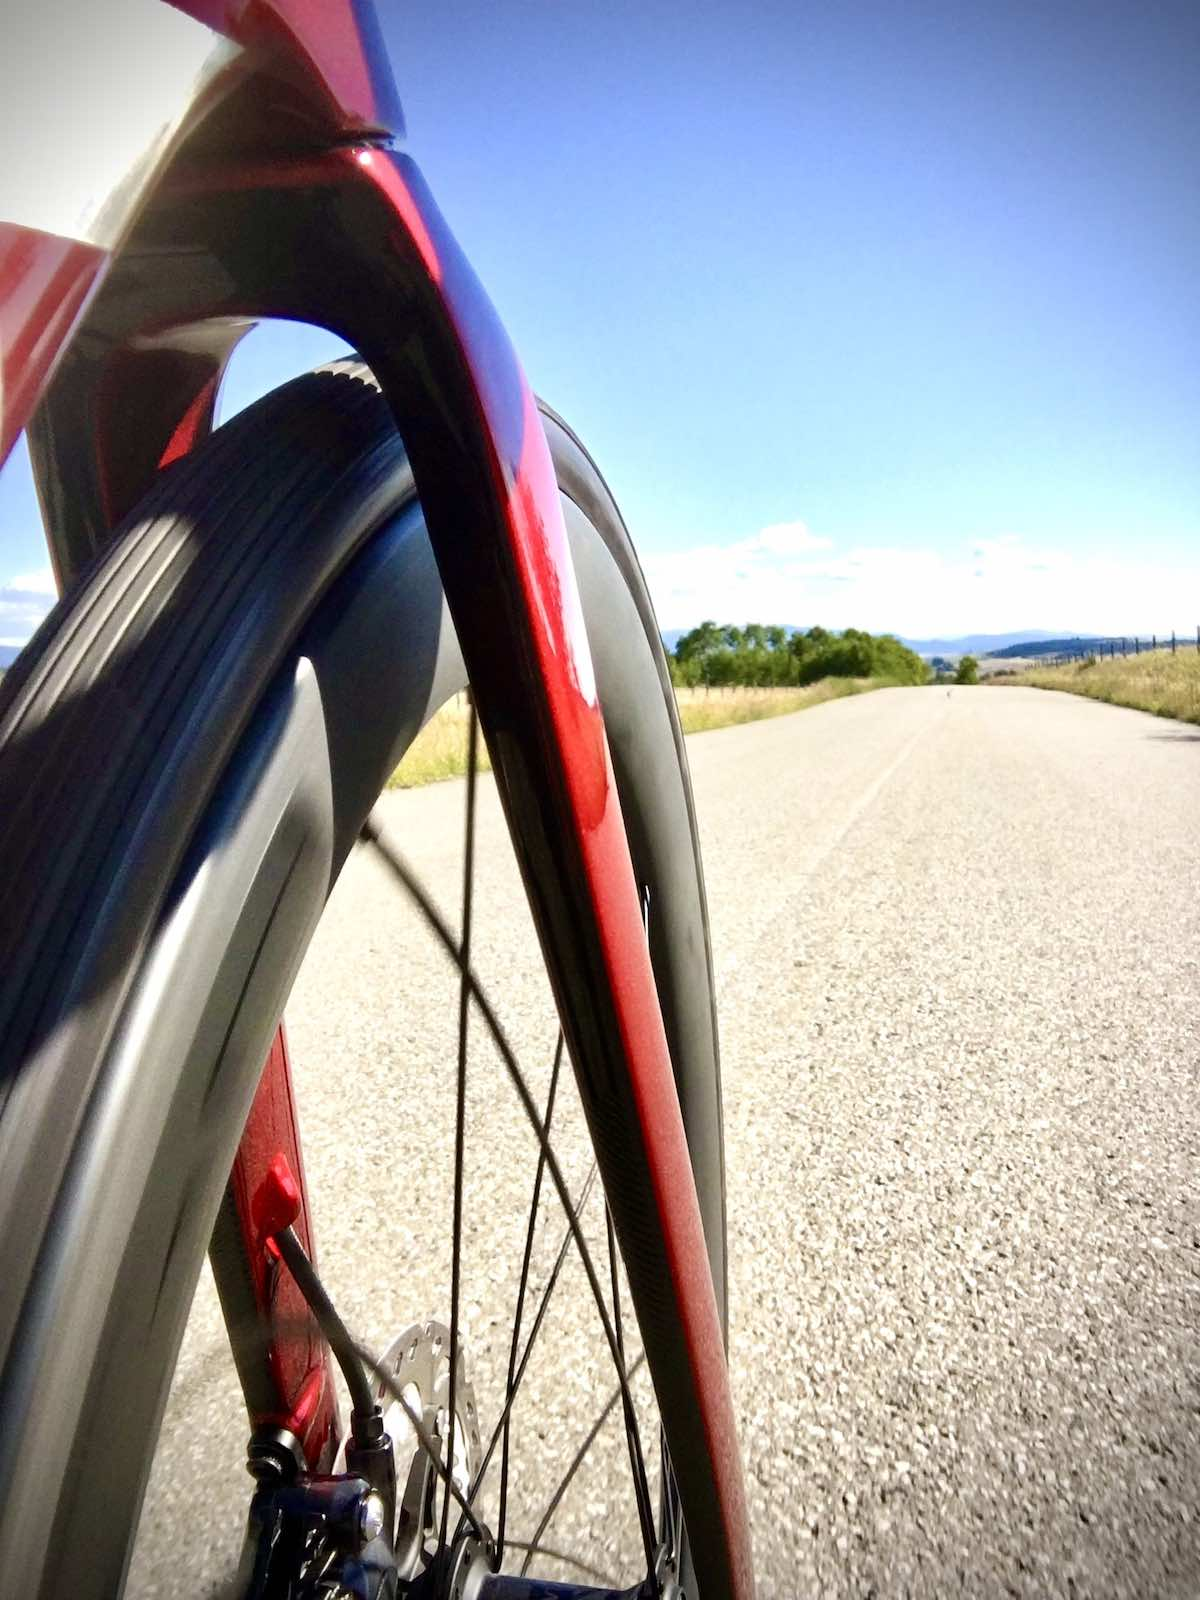 bikerumor pic of the day the photo is from the side of a road bike looking forward past the front wheel and fork towards the long straight road, the sky is clear and the sun is bright.